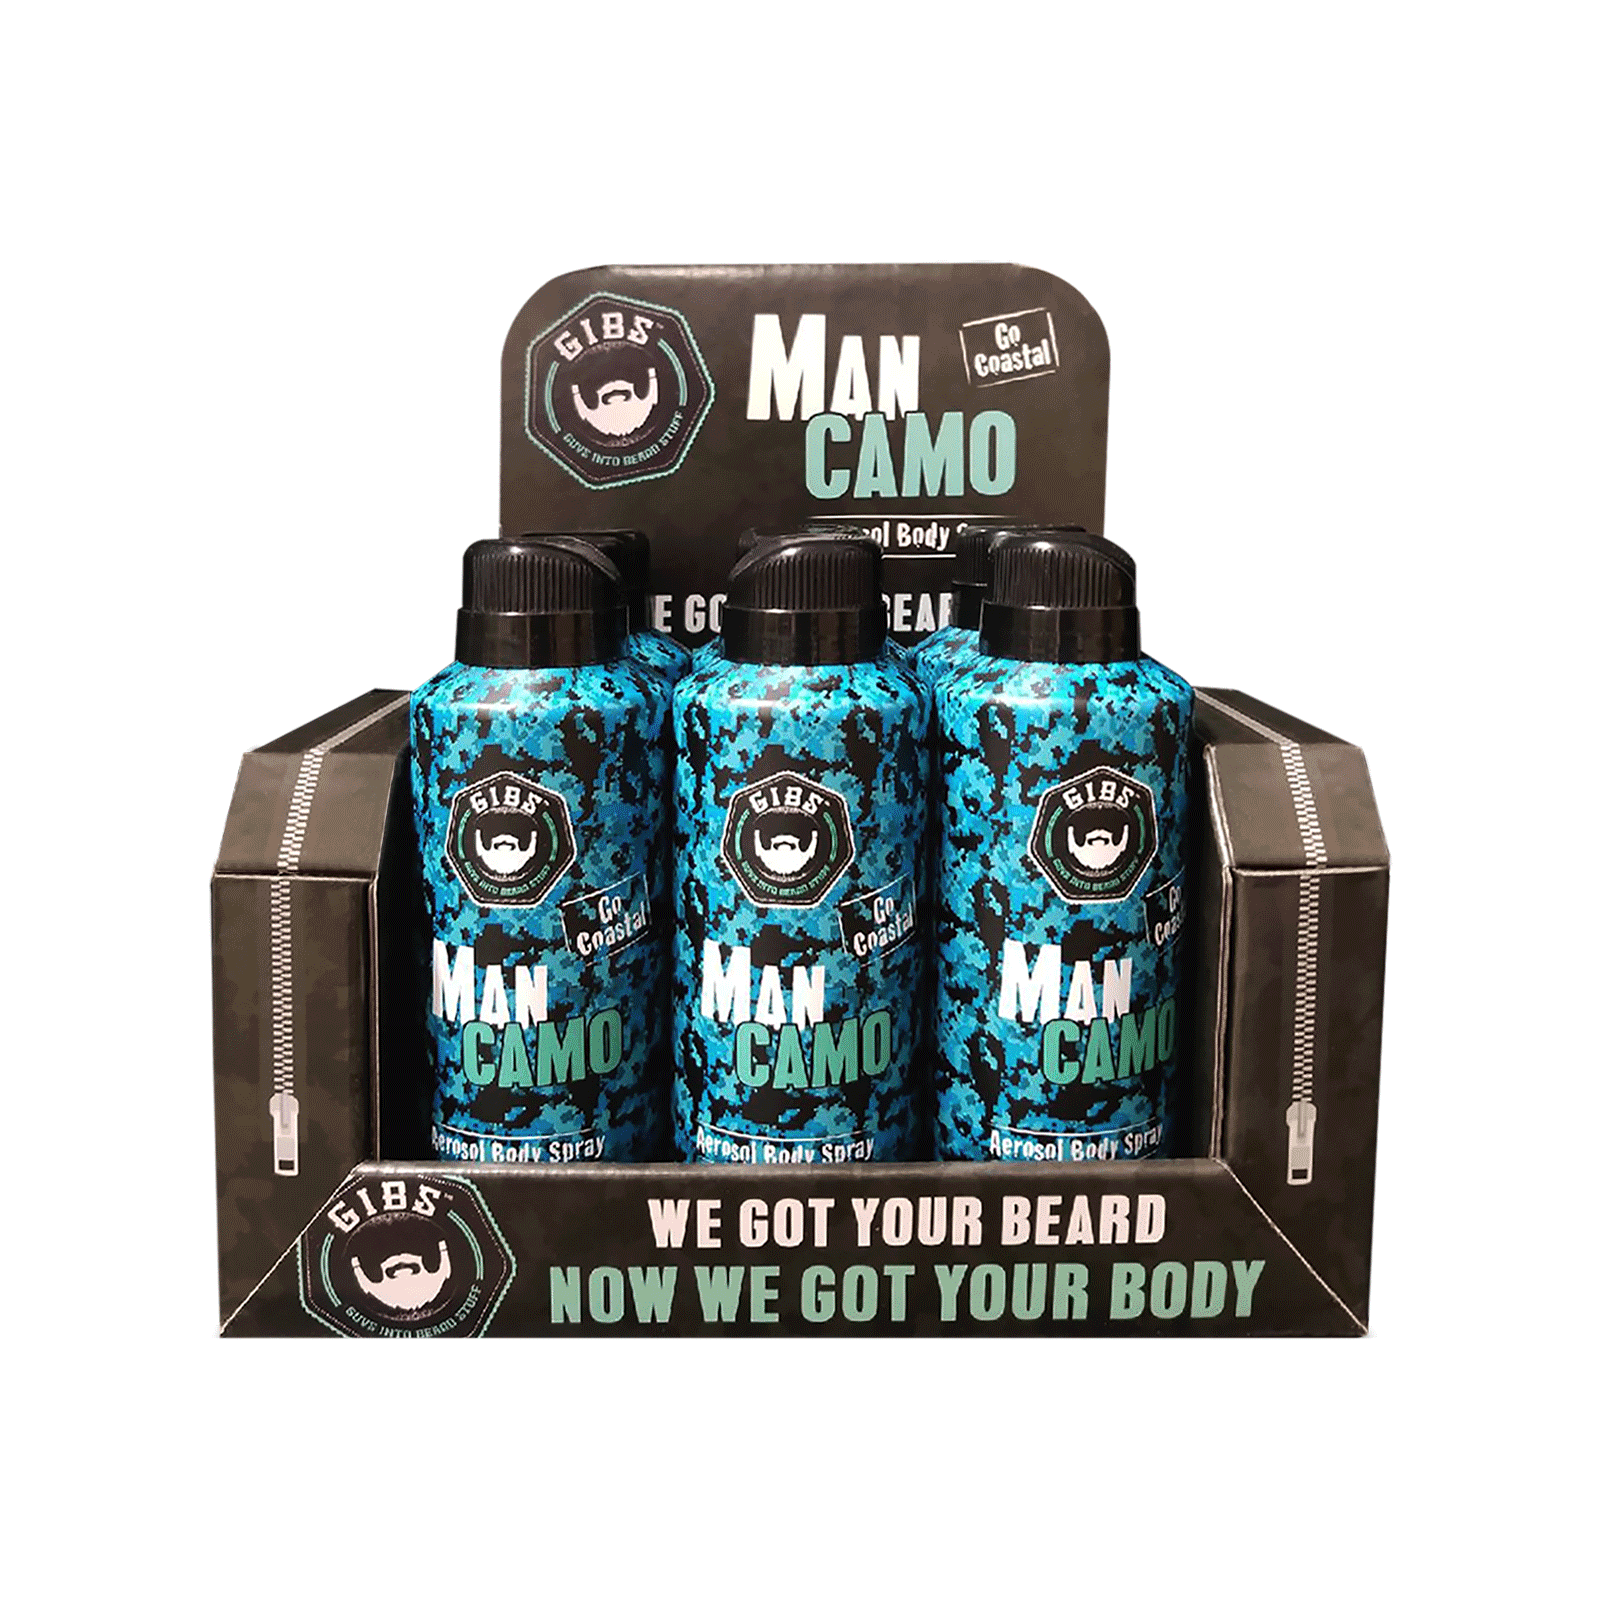 Man Camo Aerosol Body Spray - 6 Count Display